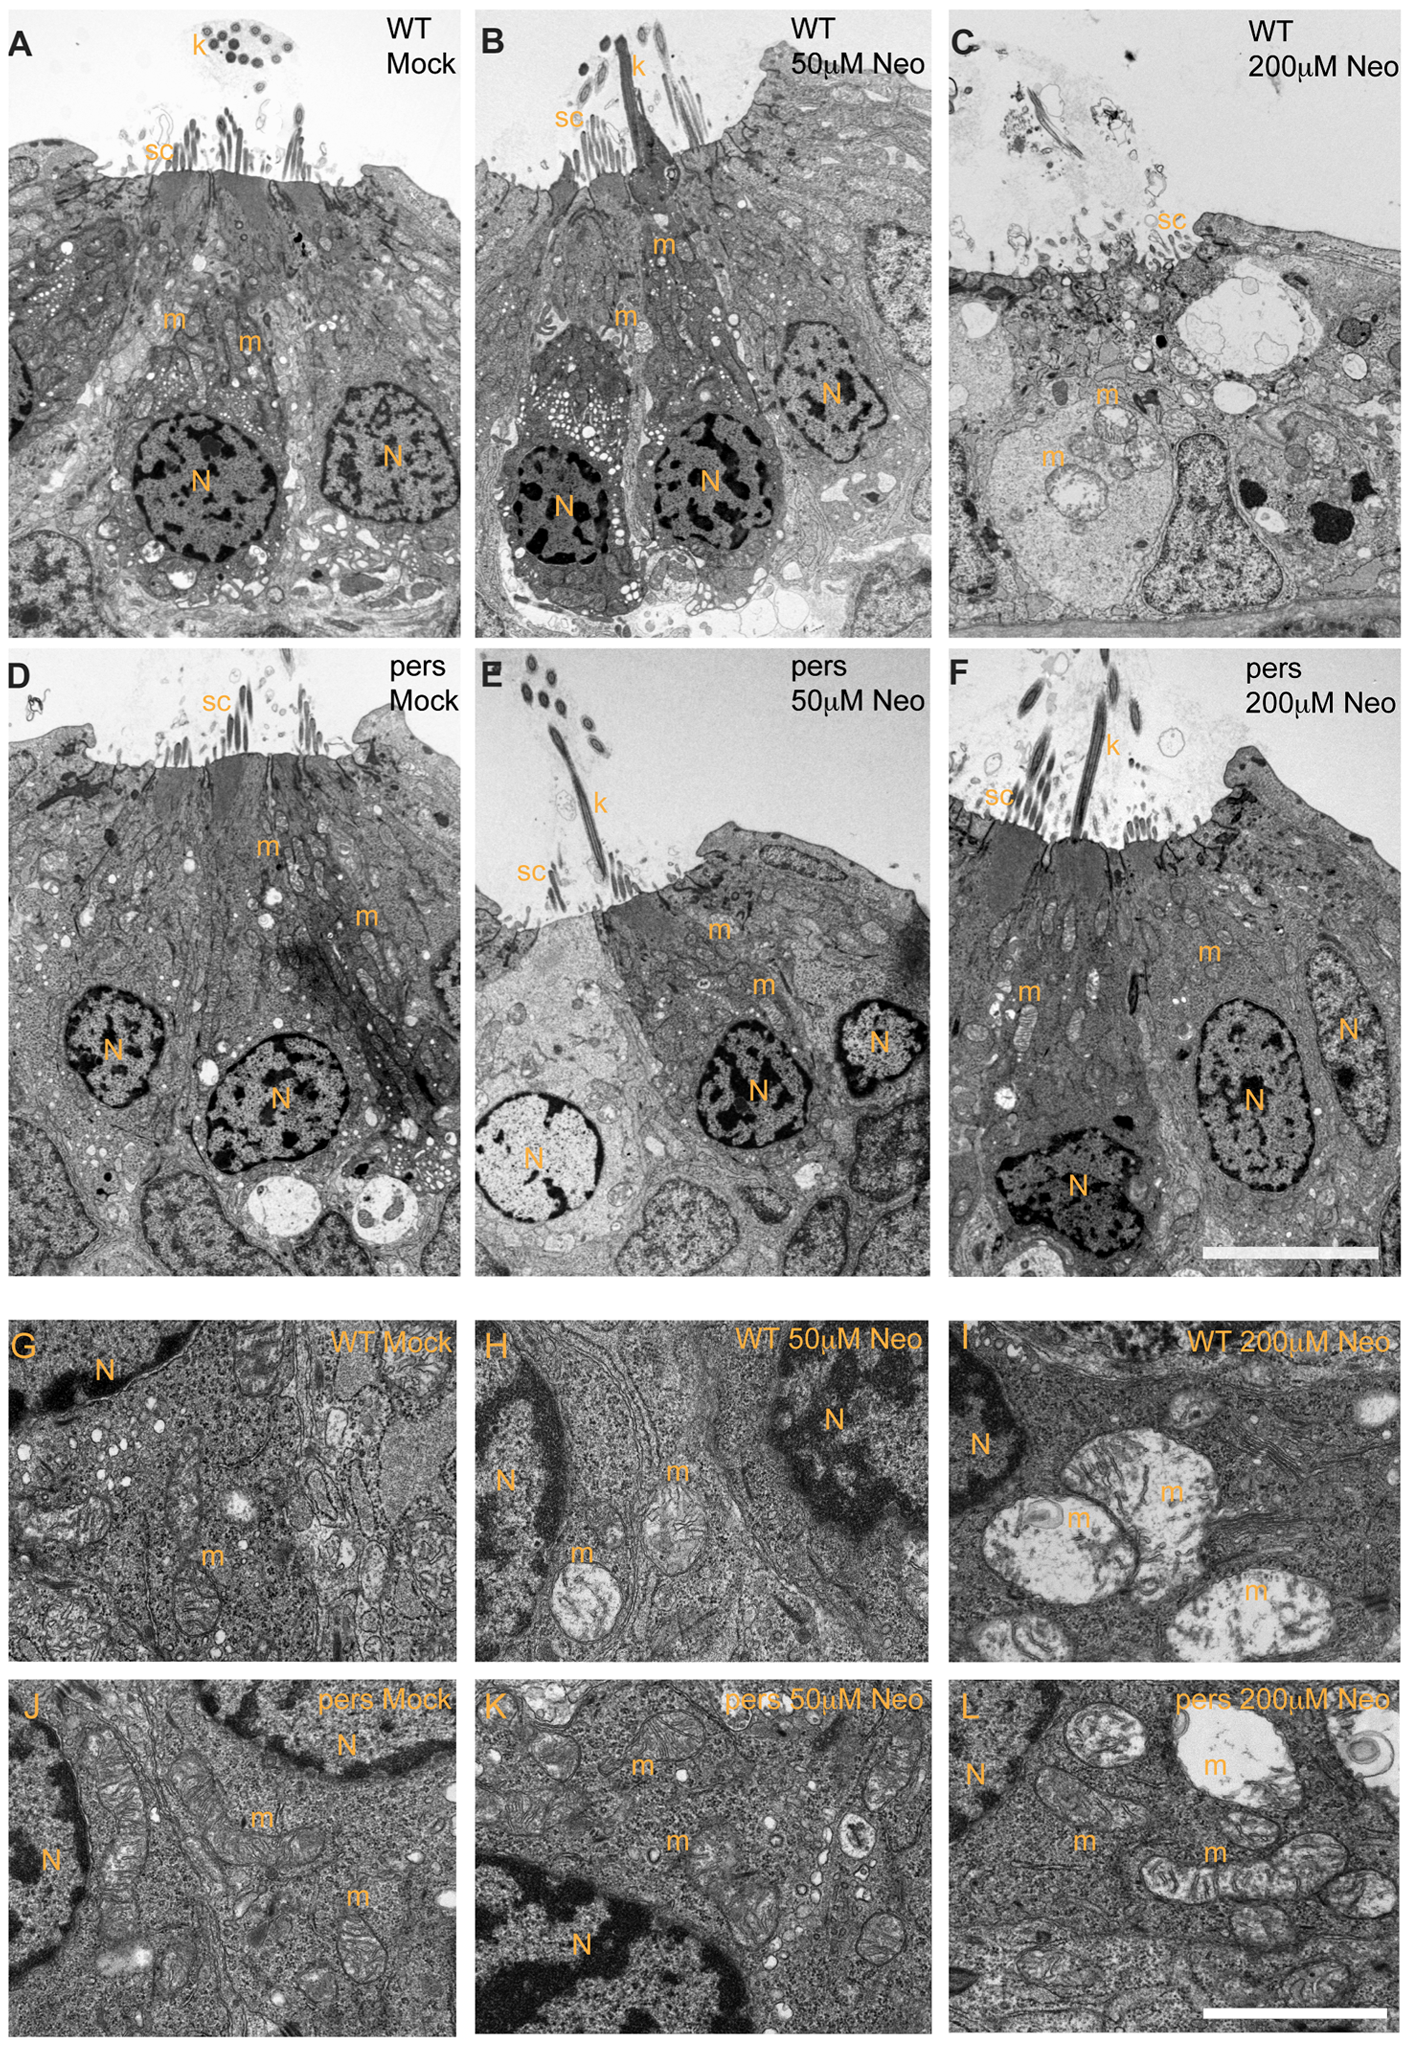 <i>persephone</i> hair cells have normal morphology and show only modest ultrastructural changes when treated with neomycin.